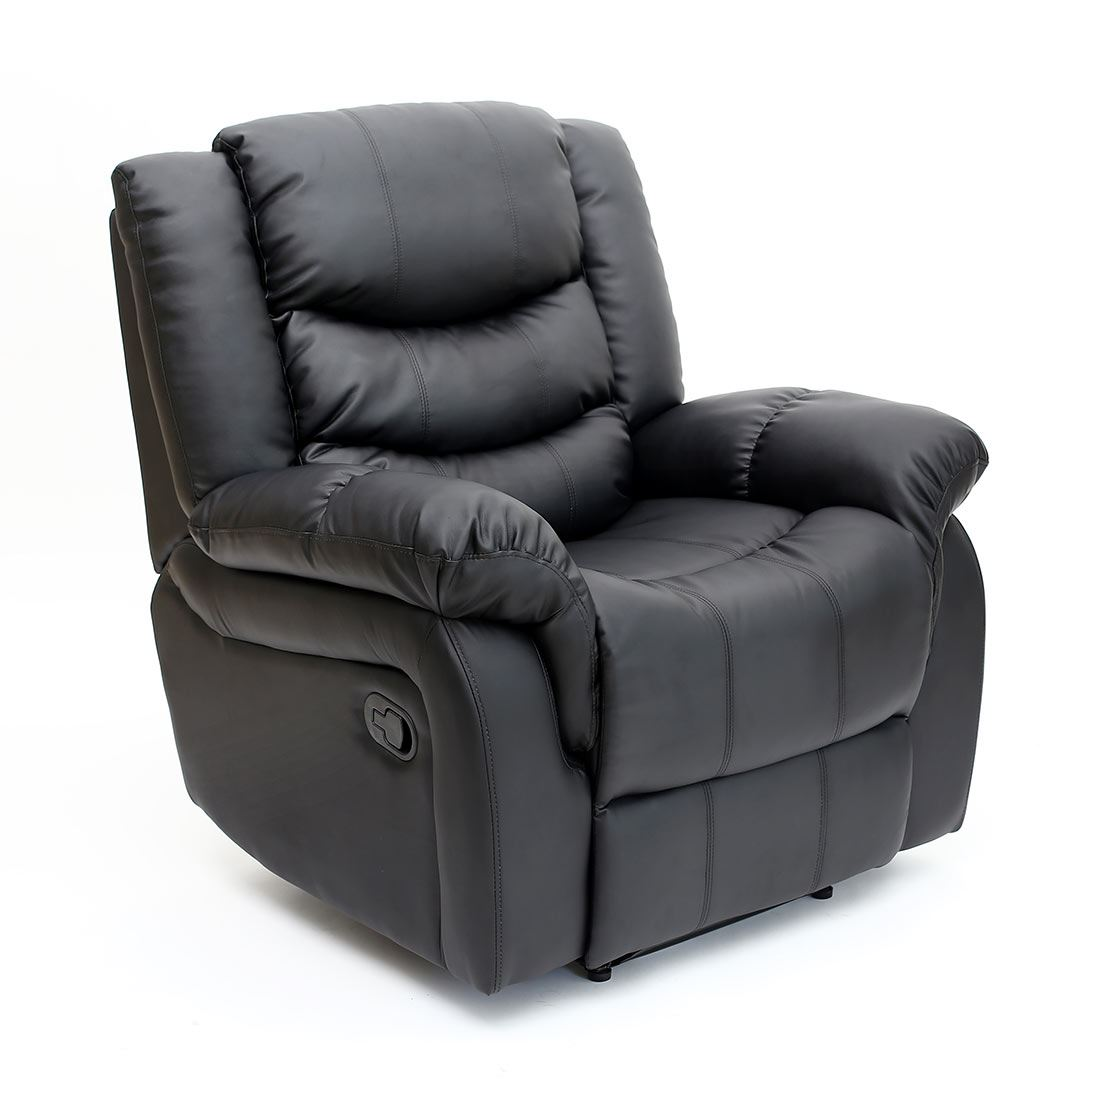 reclining gaming chair bedroom next seattle leather recliner armchair sofa home lounge